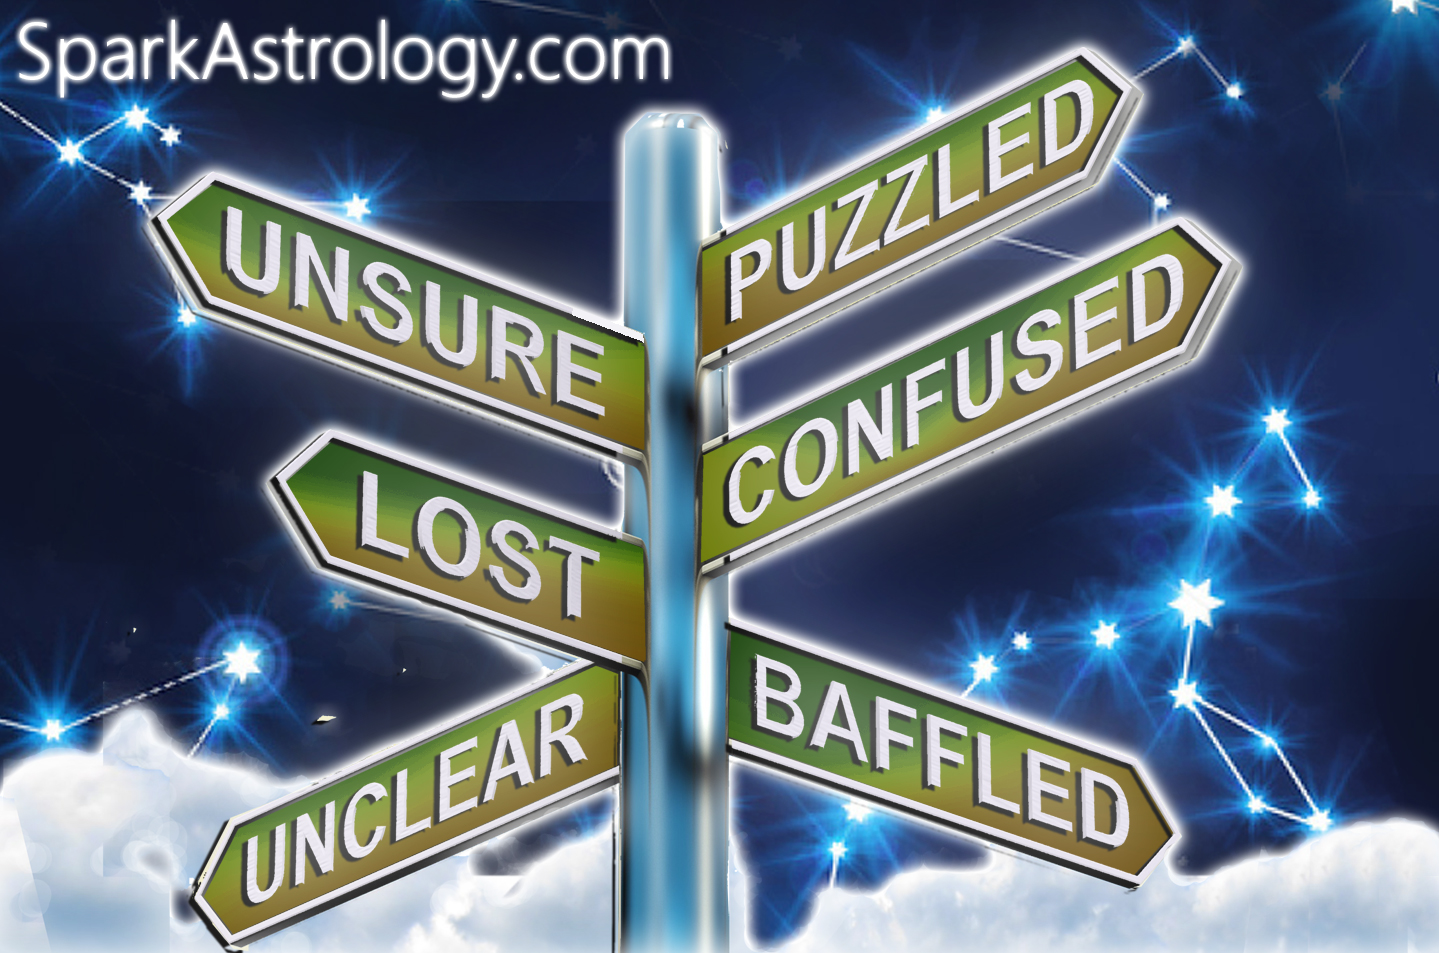 What Spark Astrology can help you with